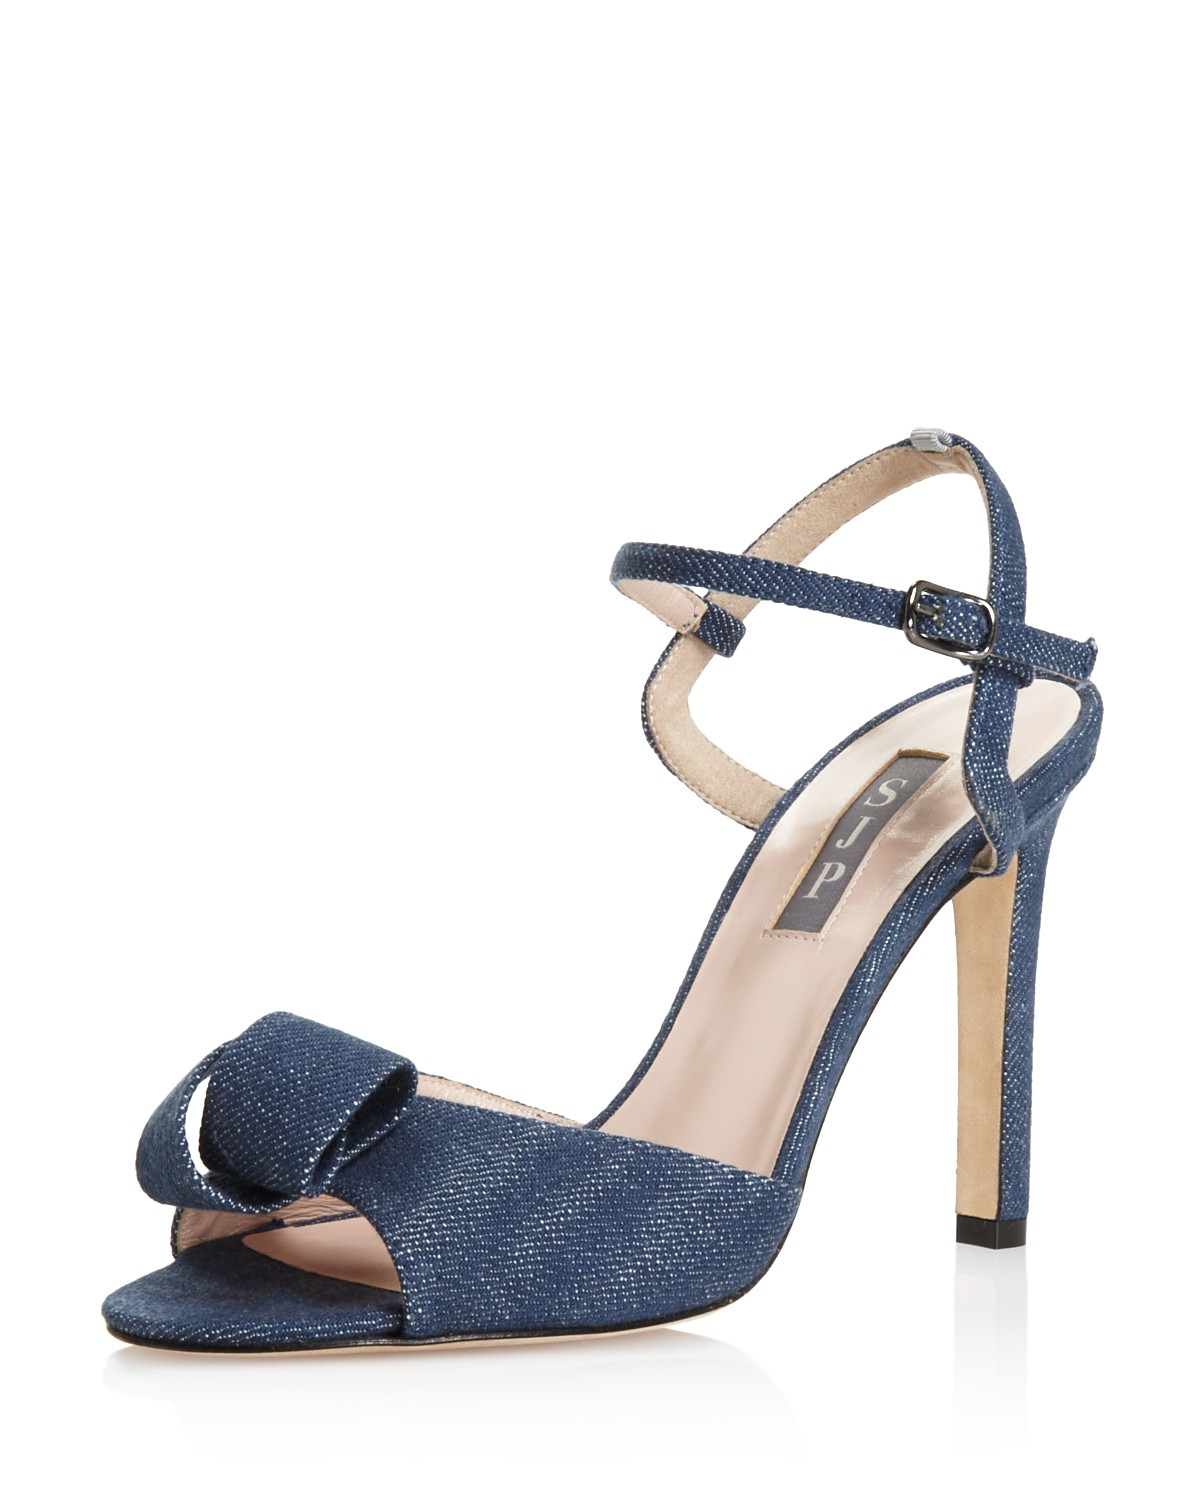 Sjp Women's Ferry Denim High-Heel Ankle Strap Sandals - 100% Exclusive nMe0K